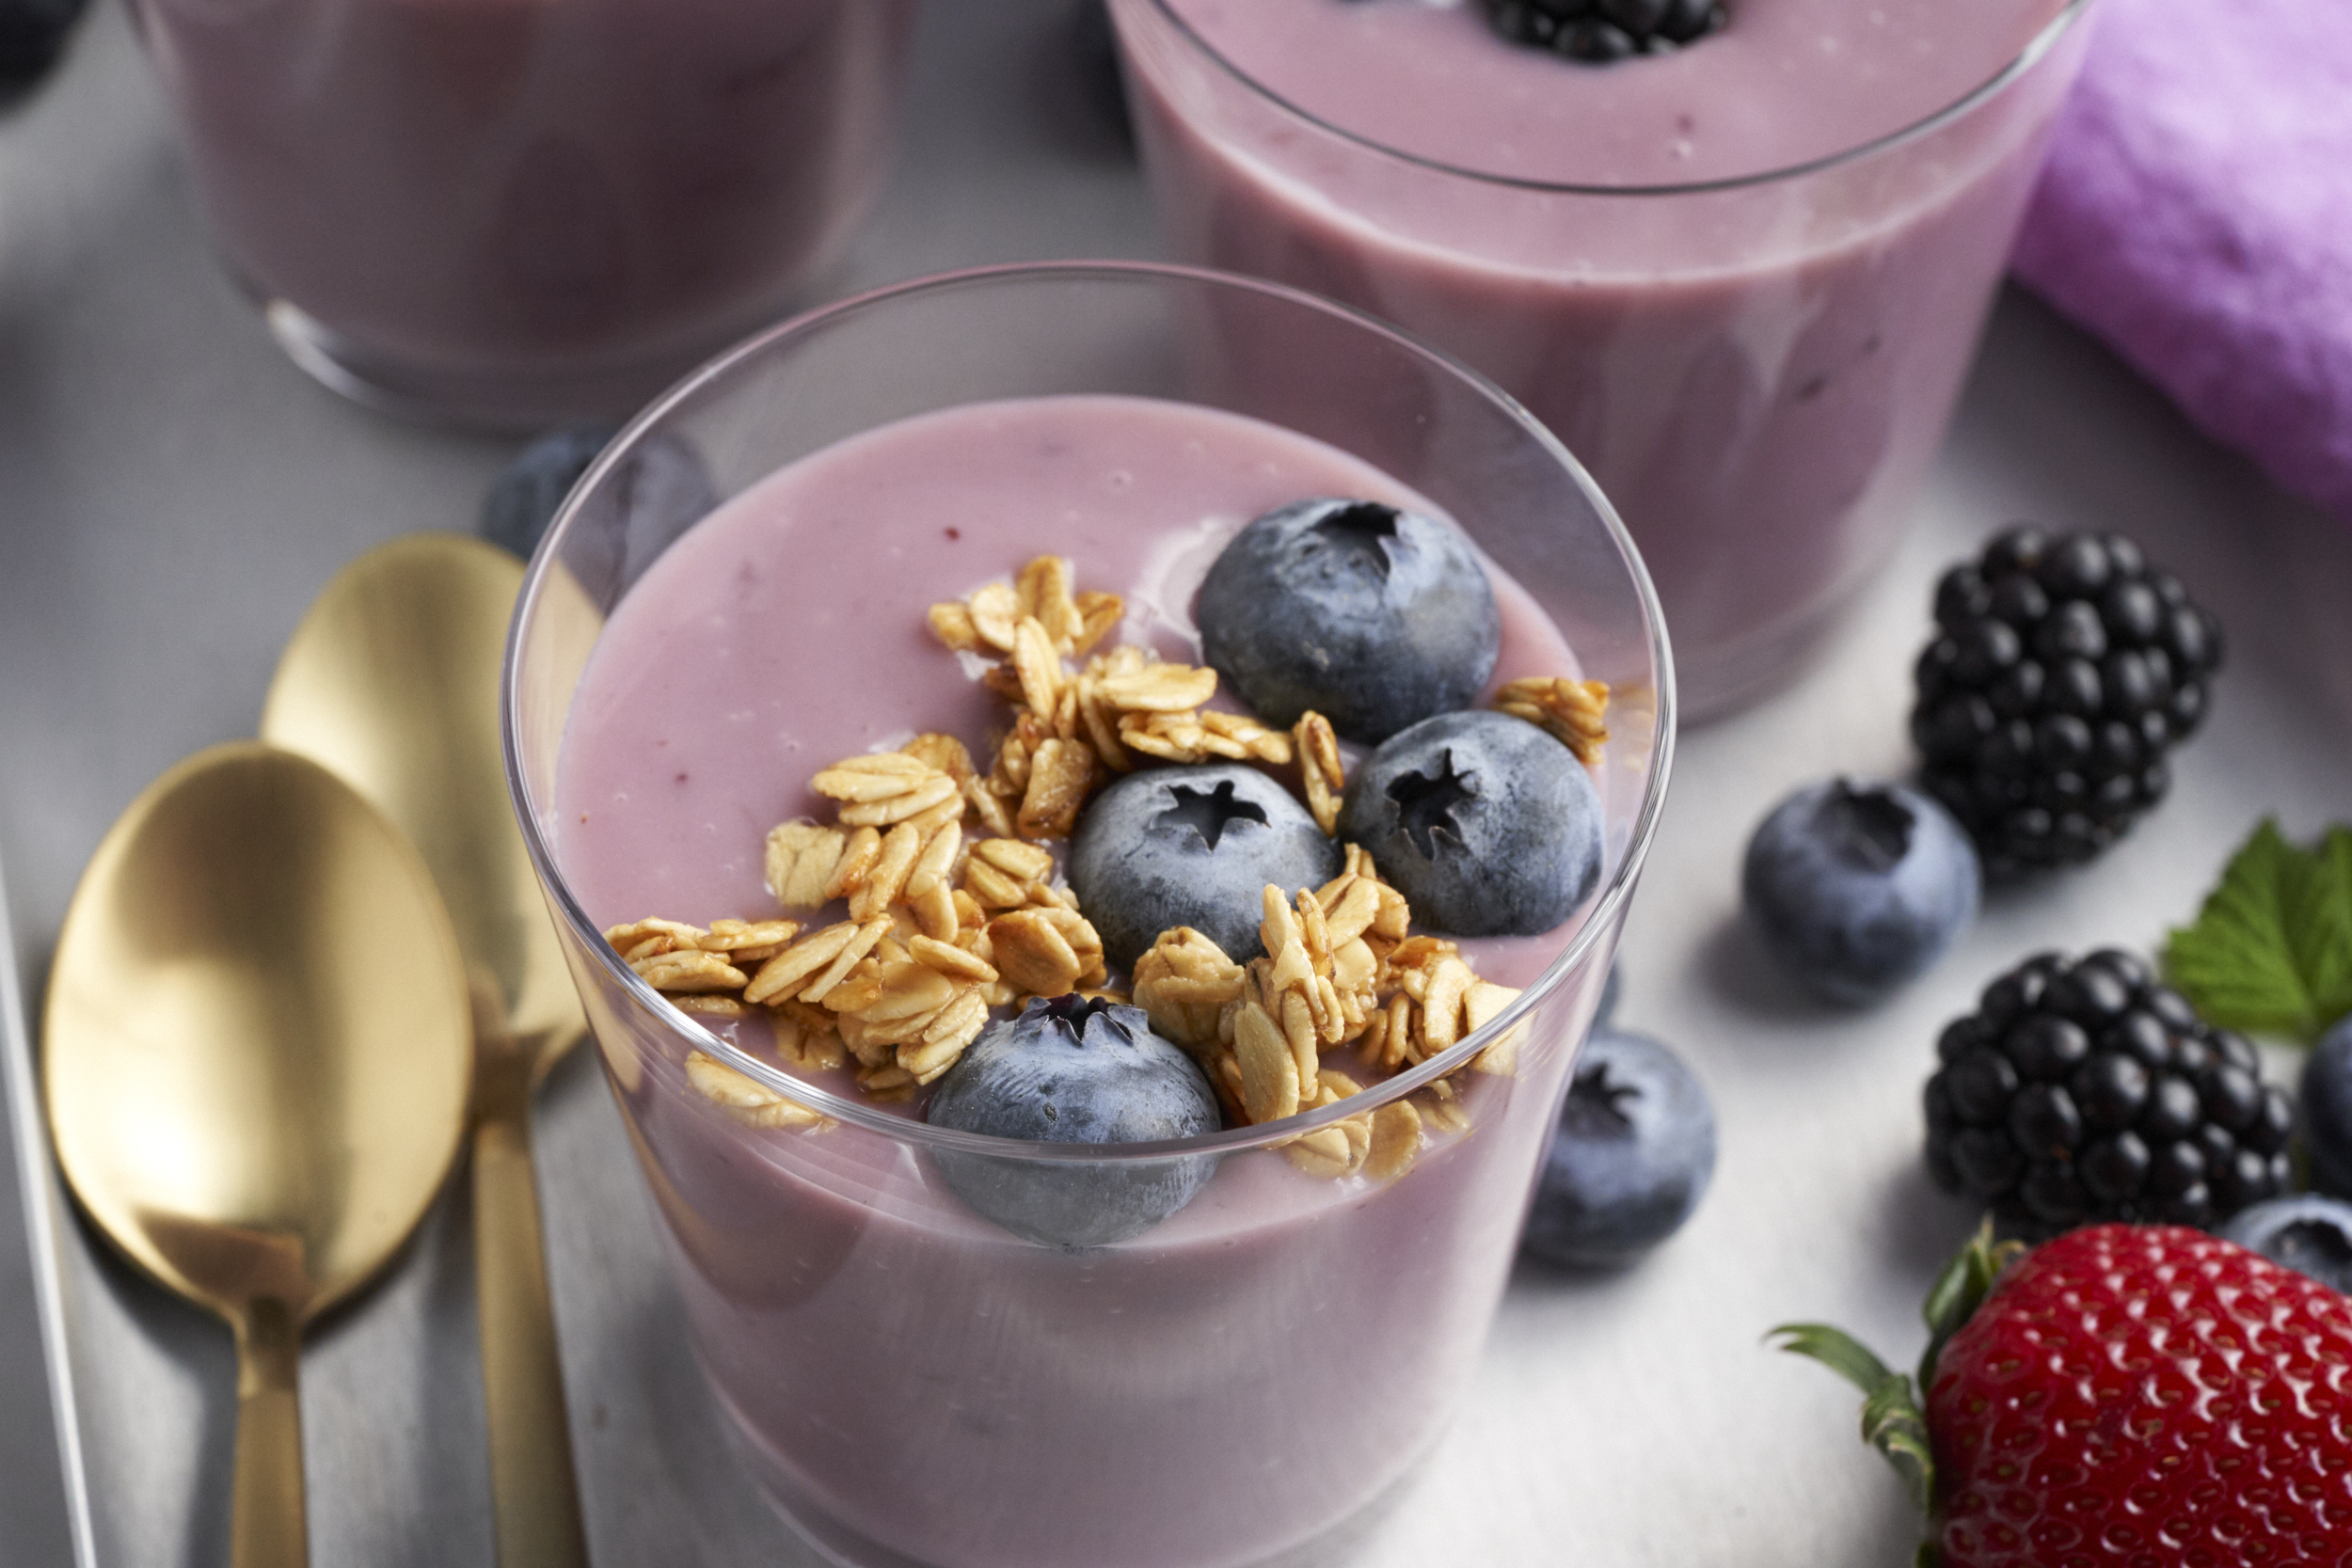 SD_260910159_Oatmilk Yogurt_Triple Berry Oatmilk Yogurt.jpg